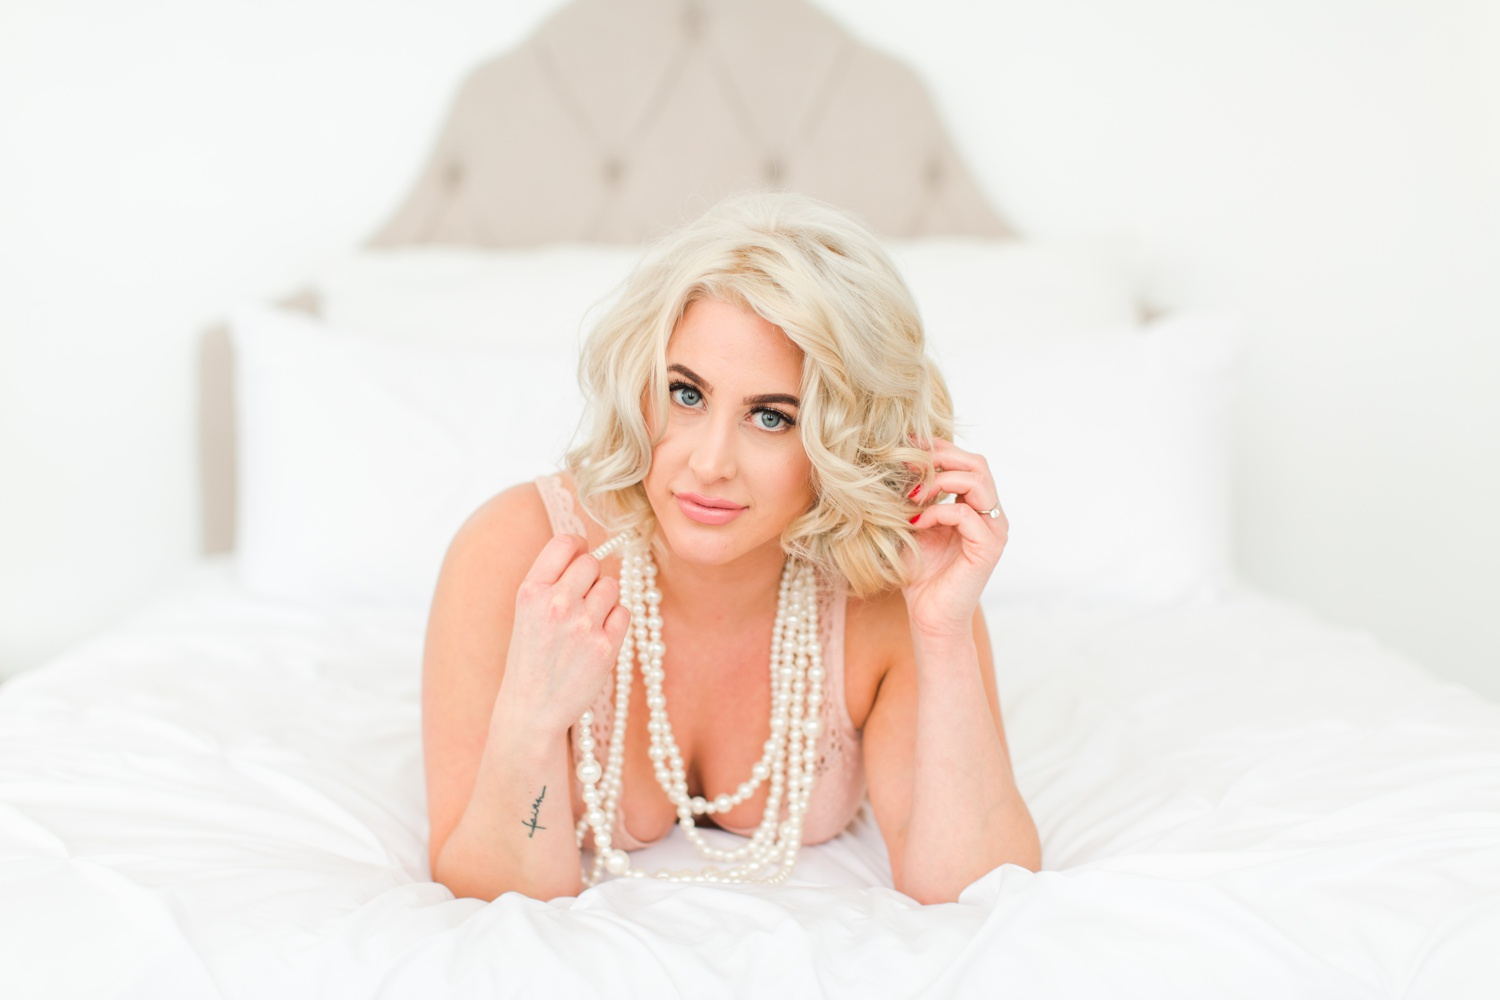 connecticut-boudoir-studio-top-ct-westchester-nyc-wedding-engagement-photographer-shaina-lee-photography-photo-7.jpg